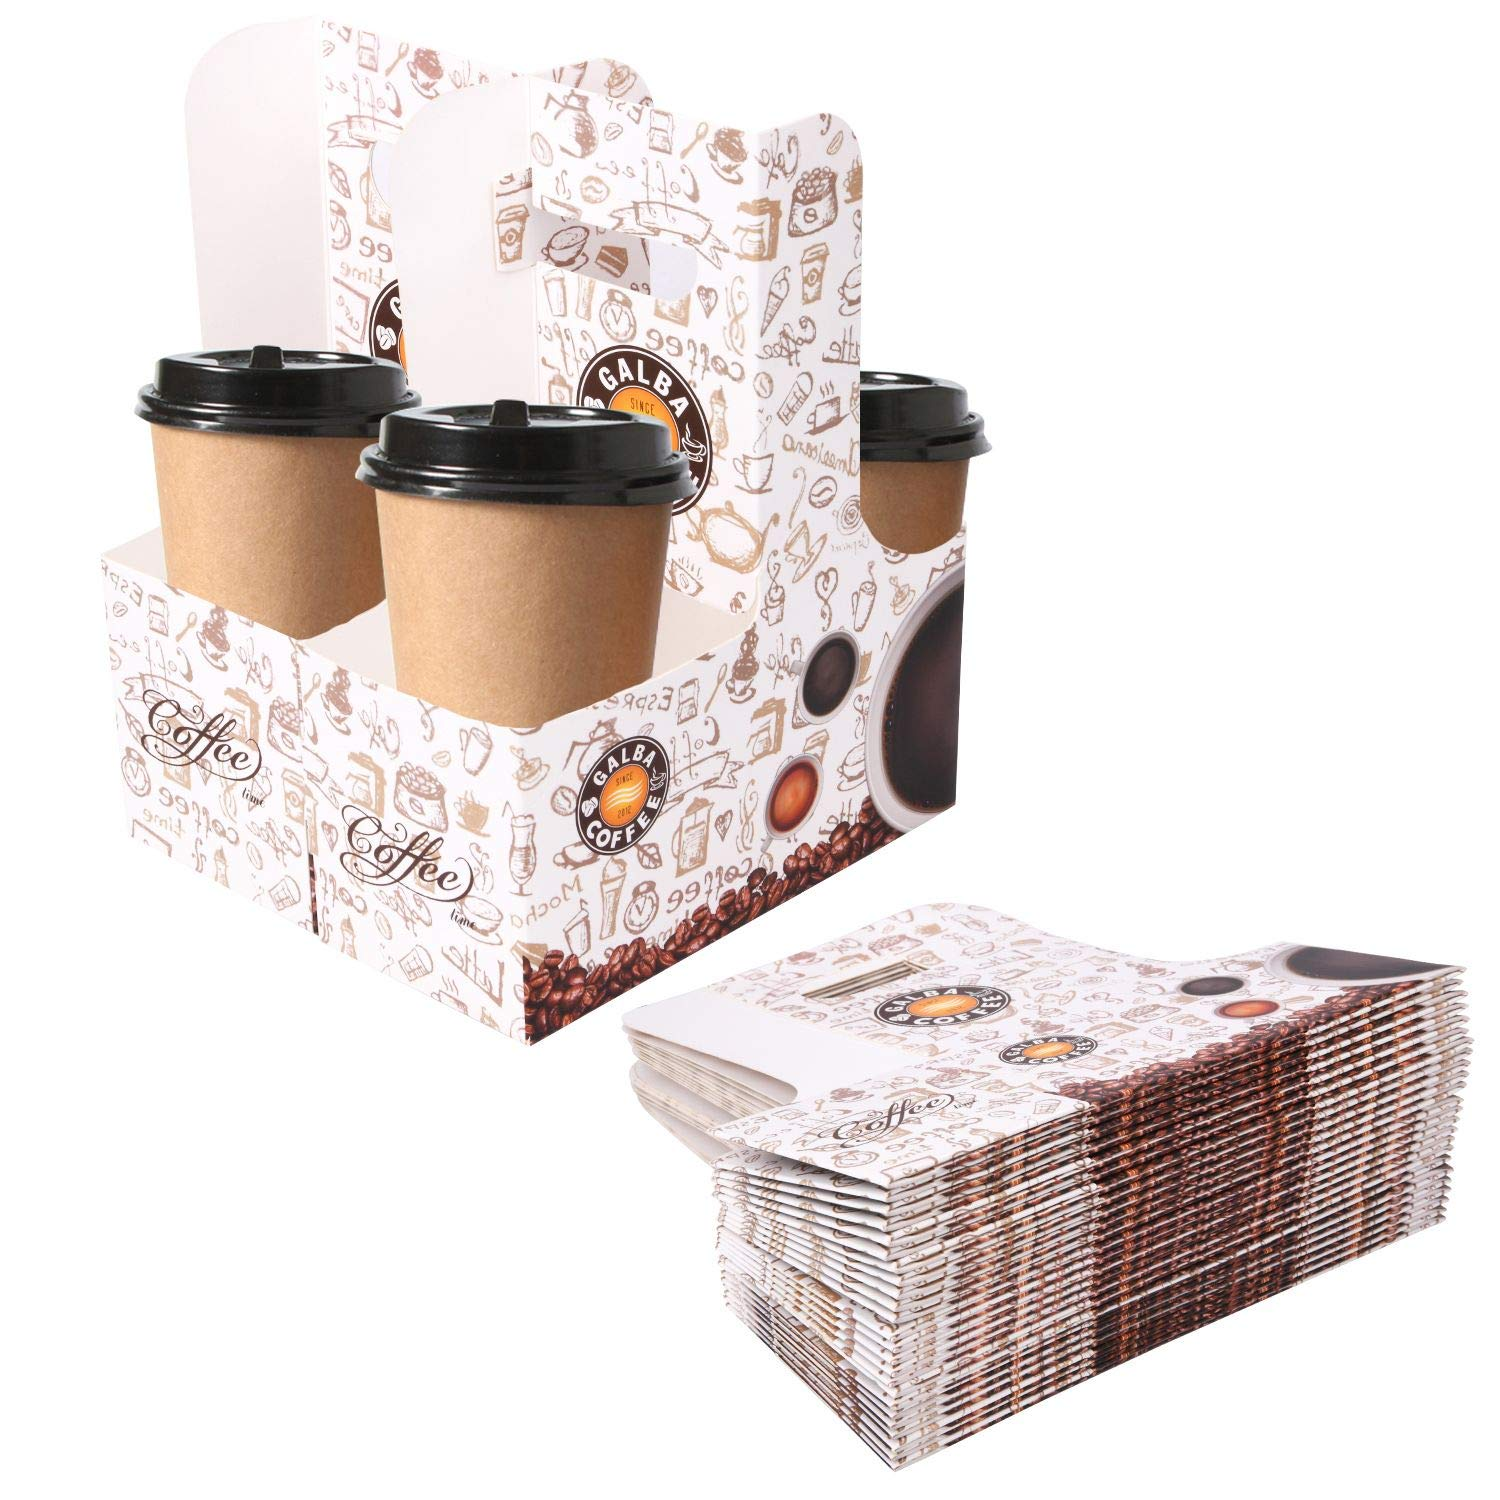 Karderon 40 Pack Drink Carrier with Handles, 2 Cups or 4 Cups Assemblable Kraft Cup Carriers Great for All Your Beverage Needs